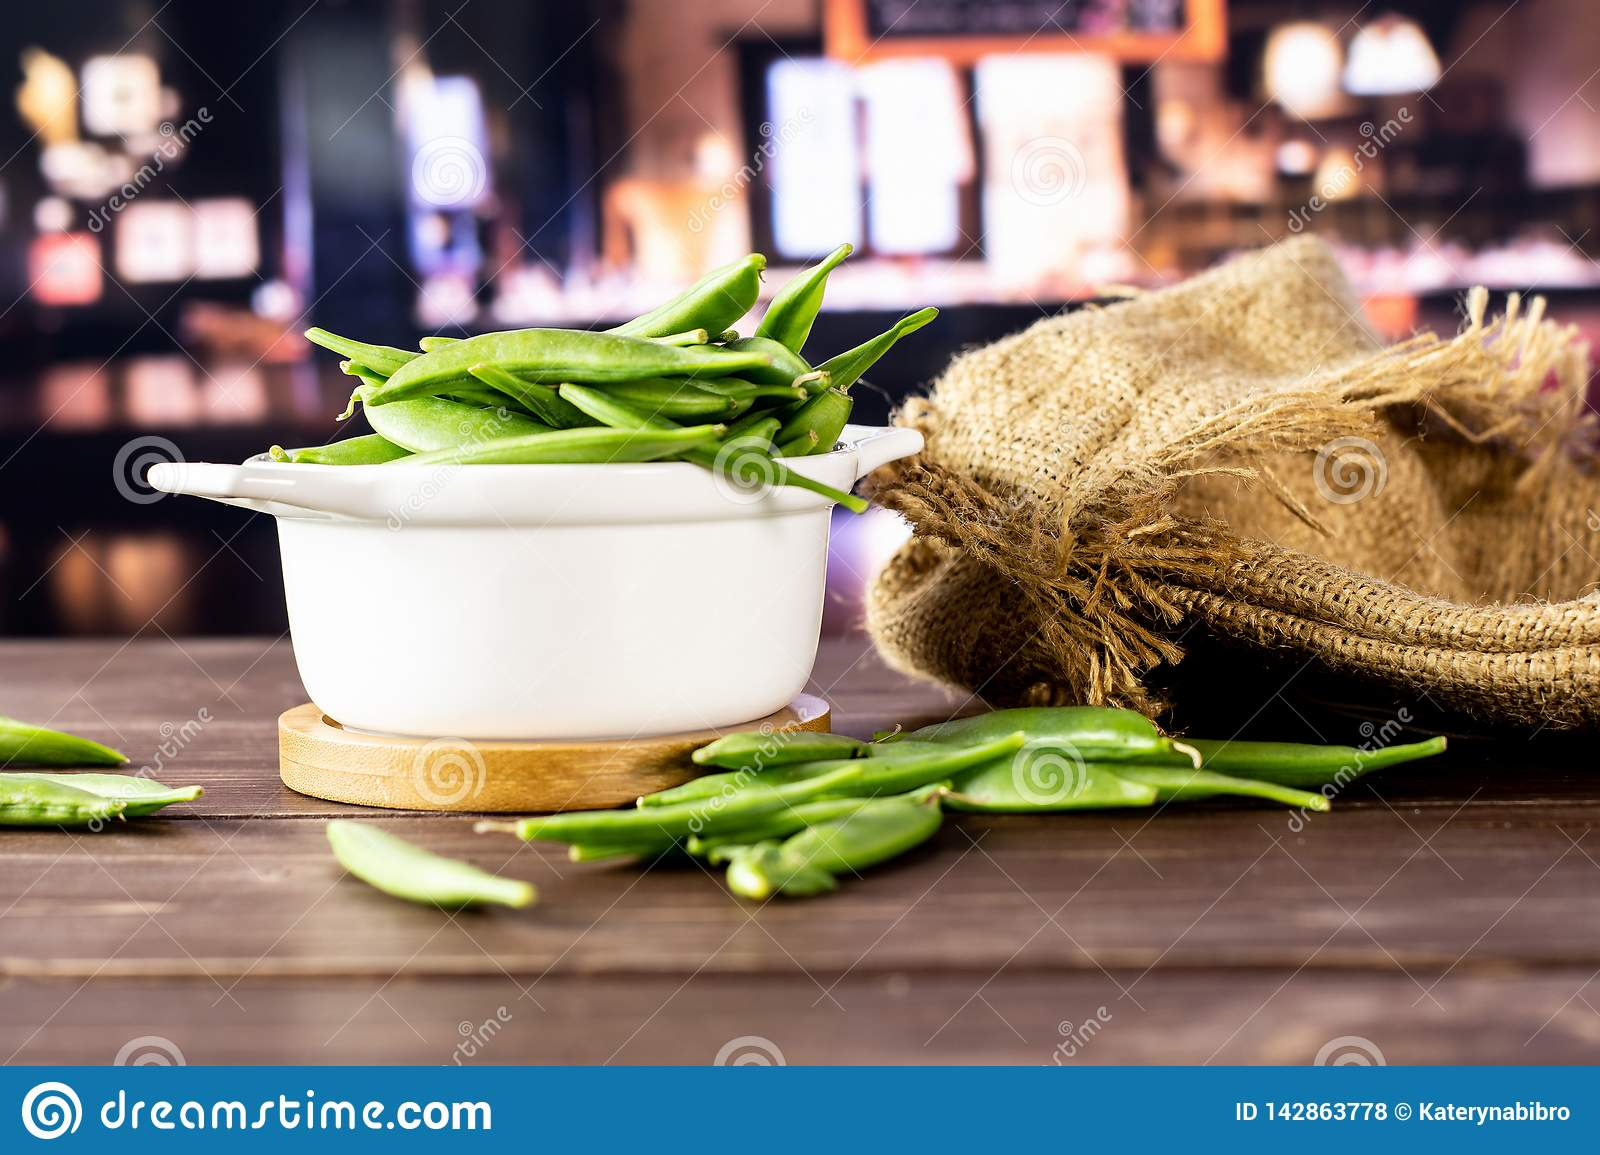 Green Sugar Snap Pea With Restaurant Stock Photo Image Of Background Saucepan 142863778